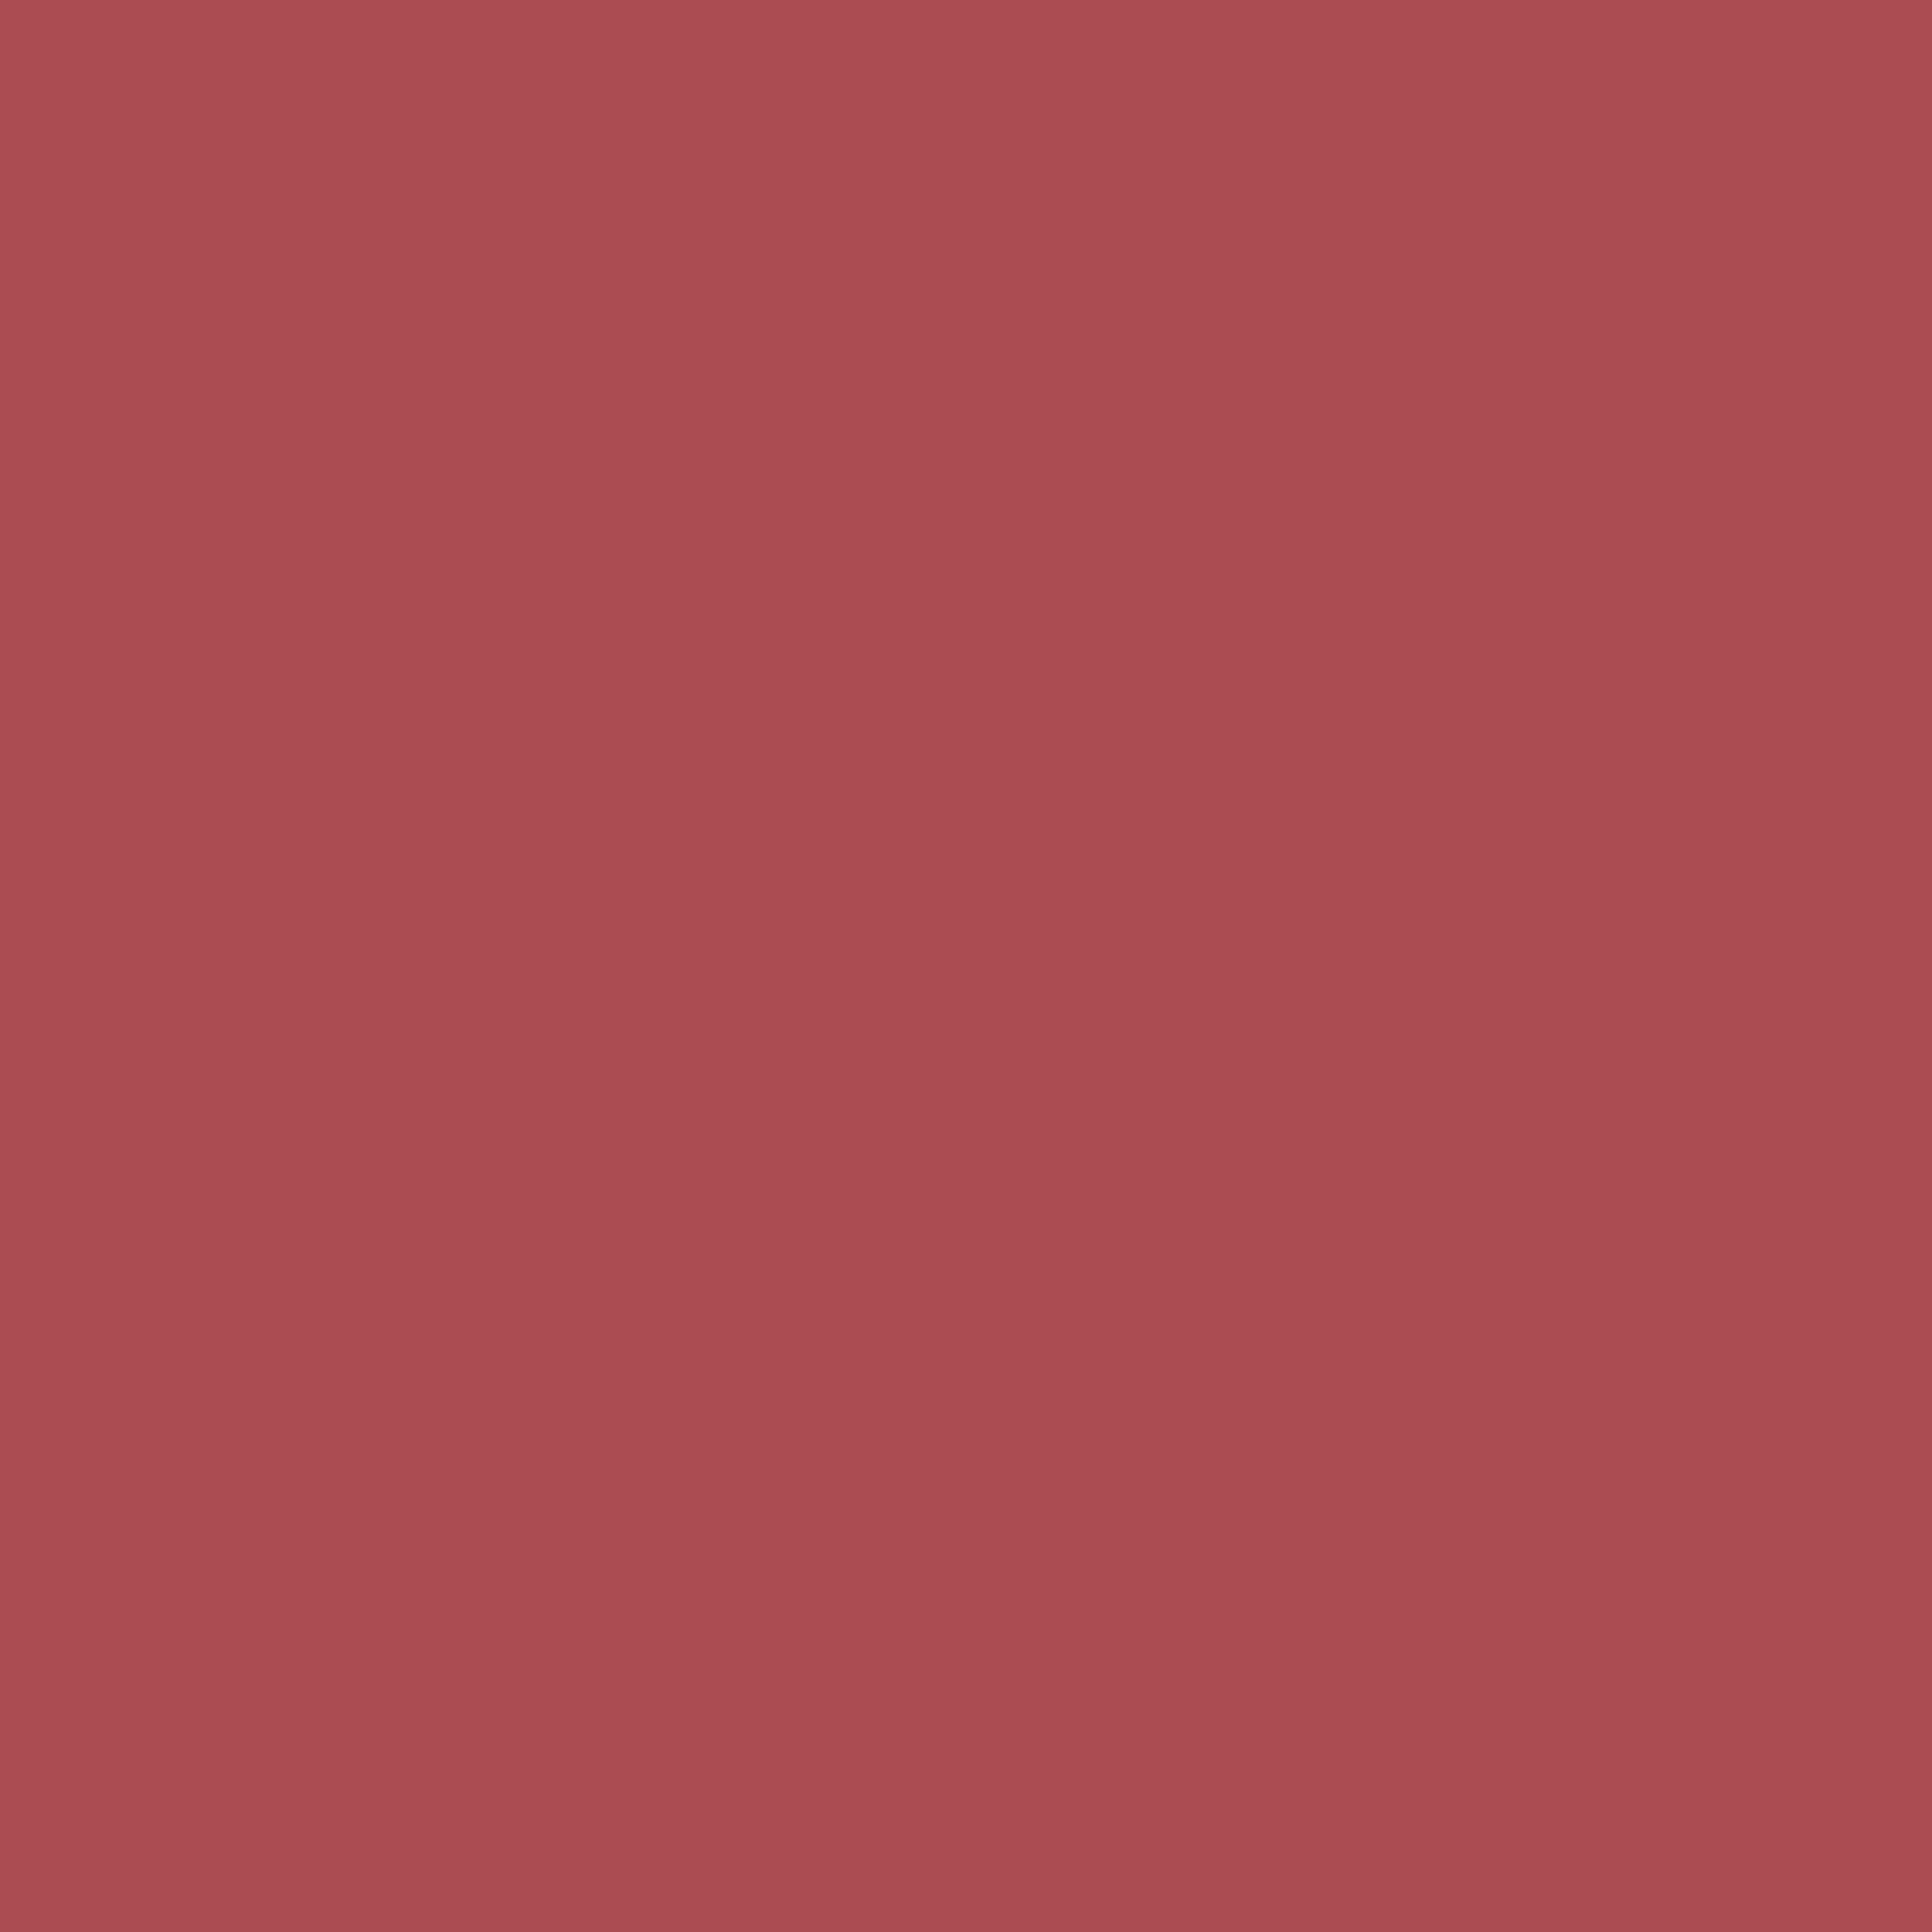 2048x2048 English Red Solid Color Background